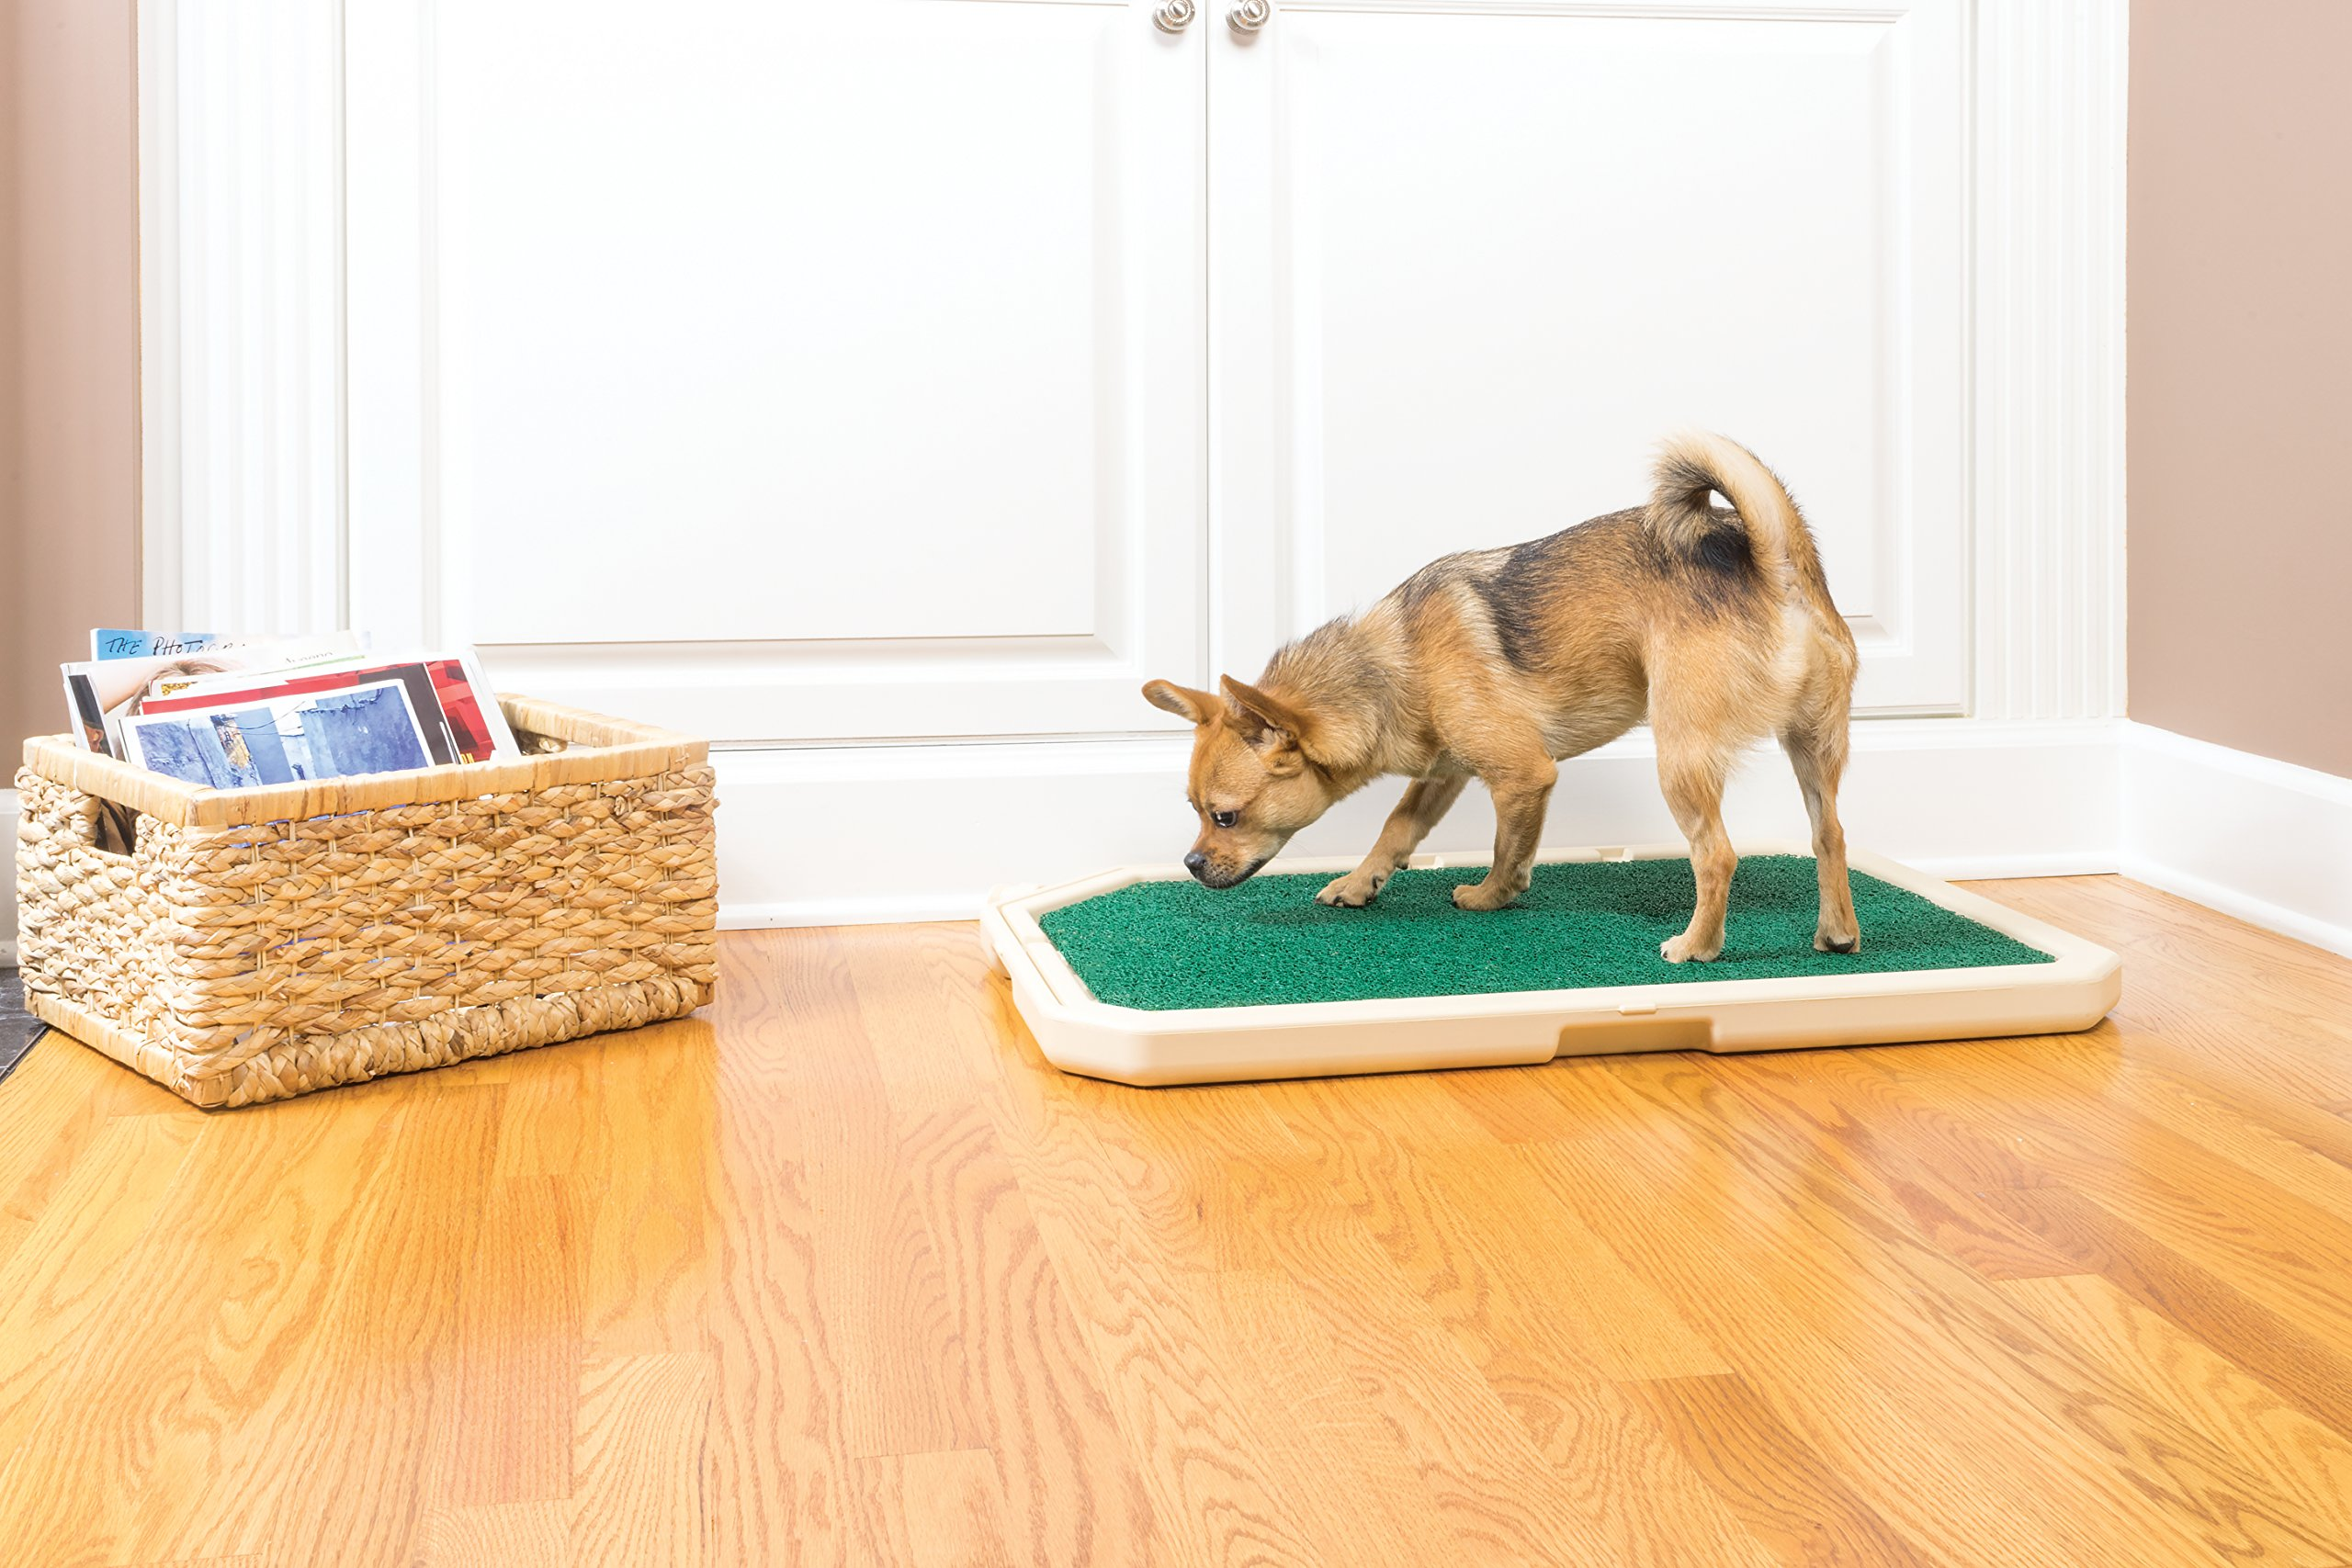 PetSafe Piddle Place Indoor/Outdoor Dog Potty, Alternative to Puppy Pads, Indoor Restroom for Dogs by PetSafe (Image #3)